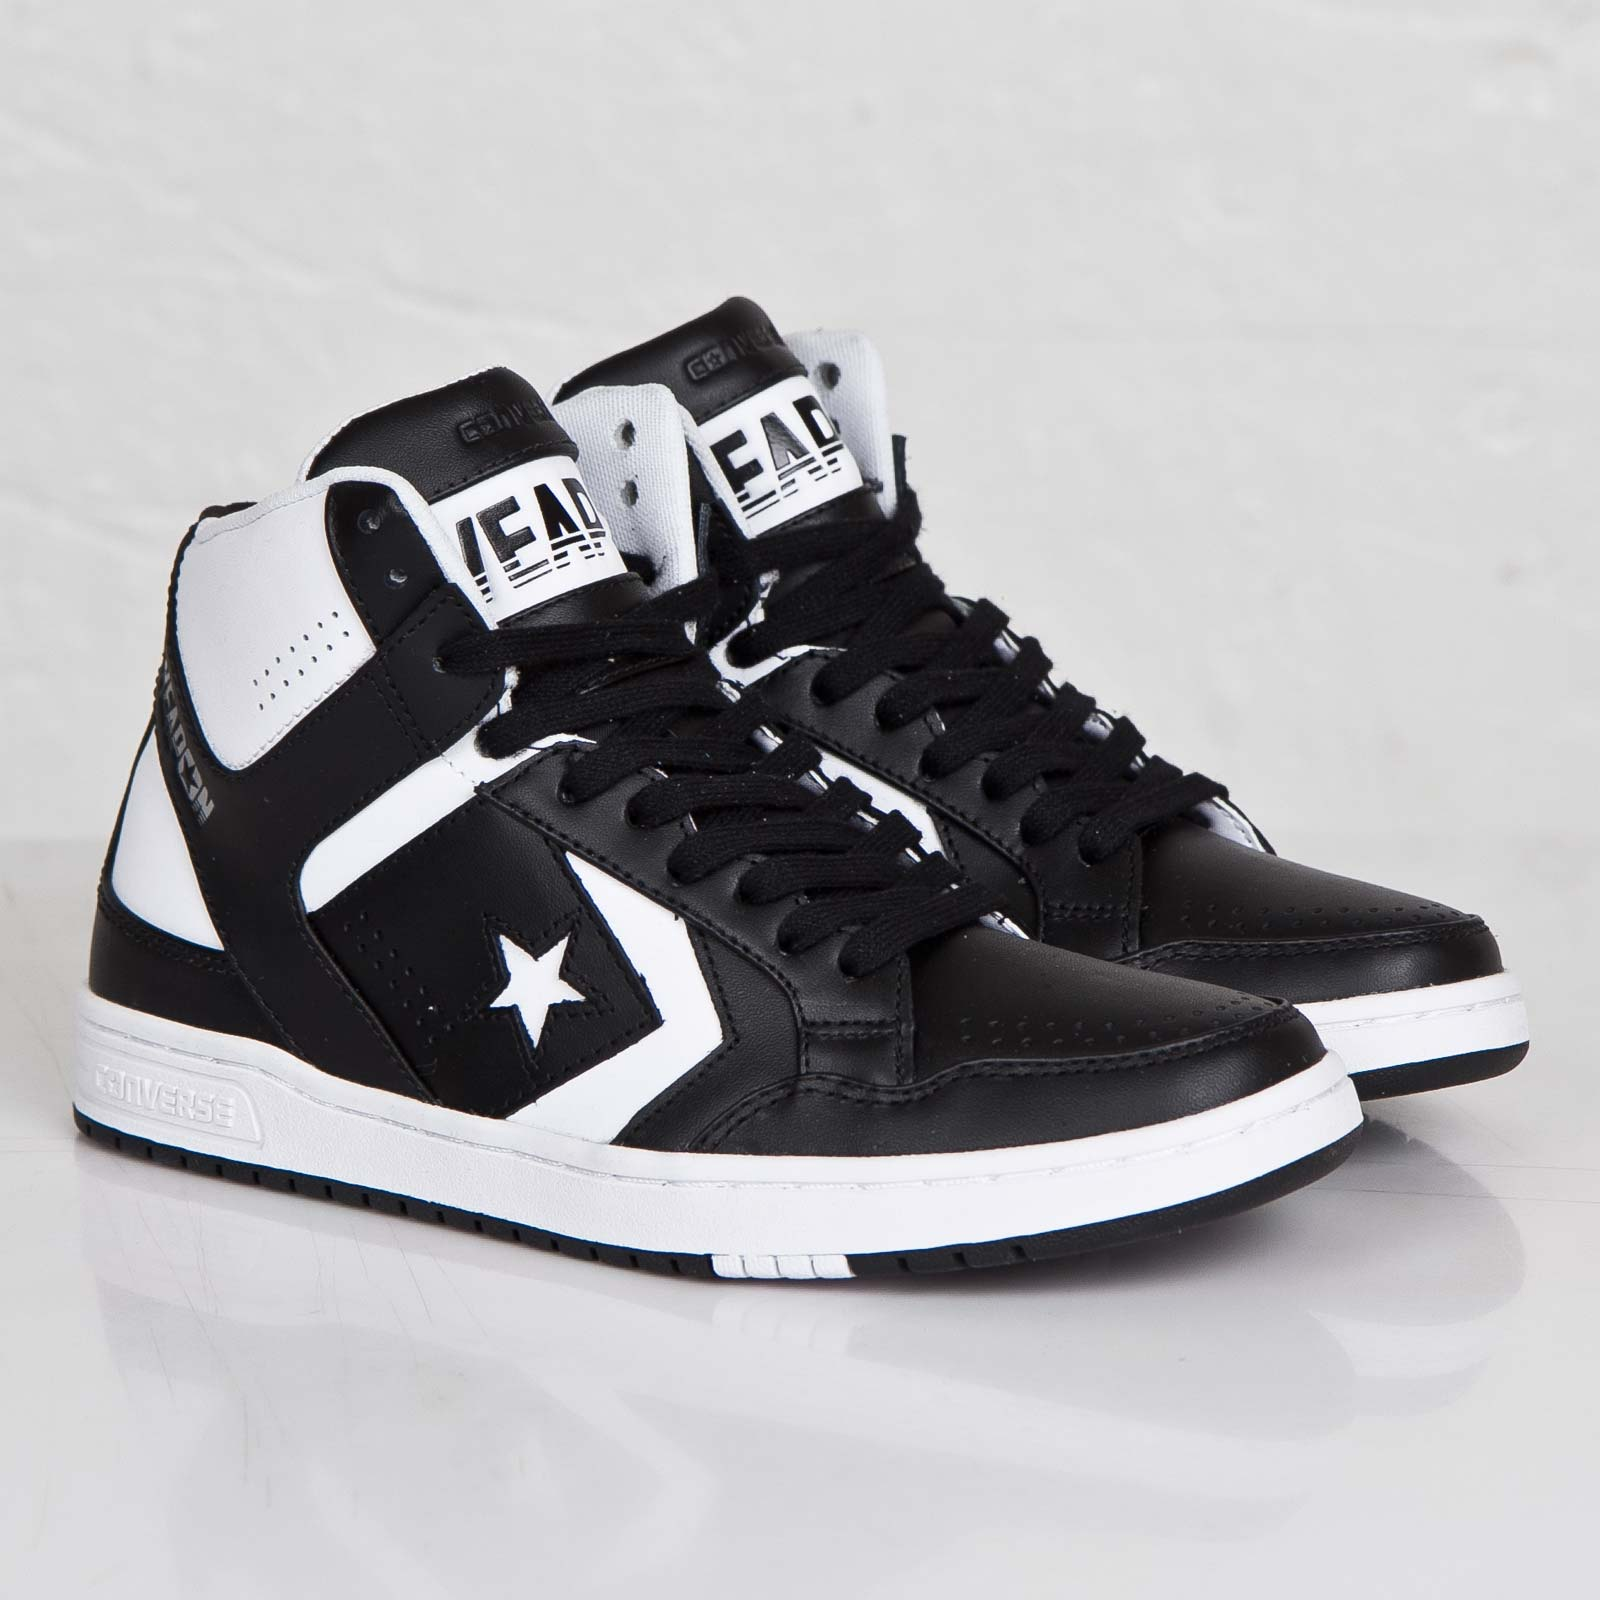 ed1db812391 Converse Weapon mid - 144545c - Sneakersnstuff